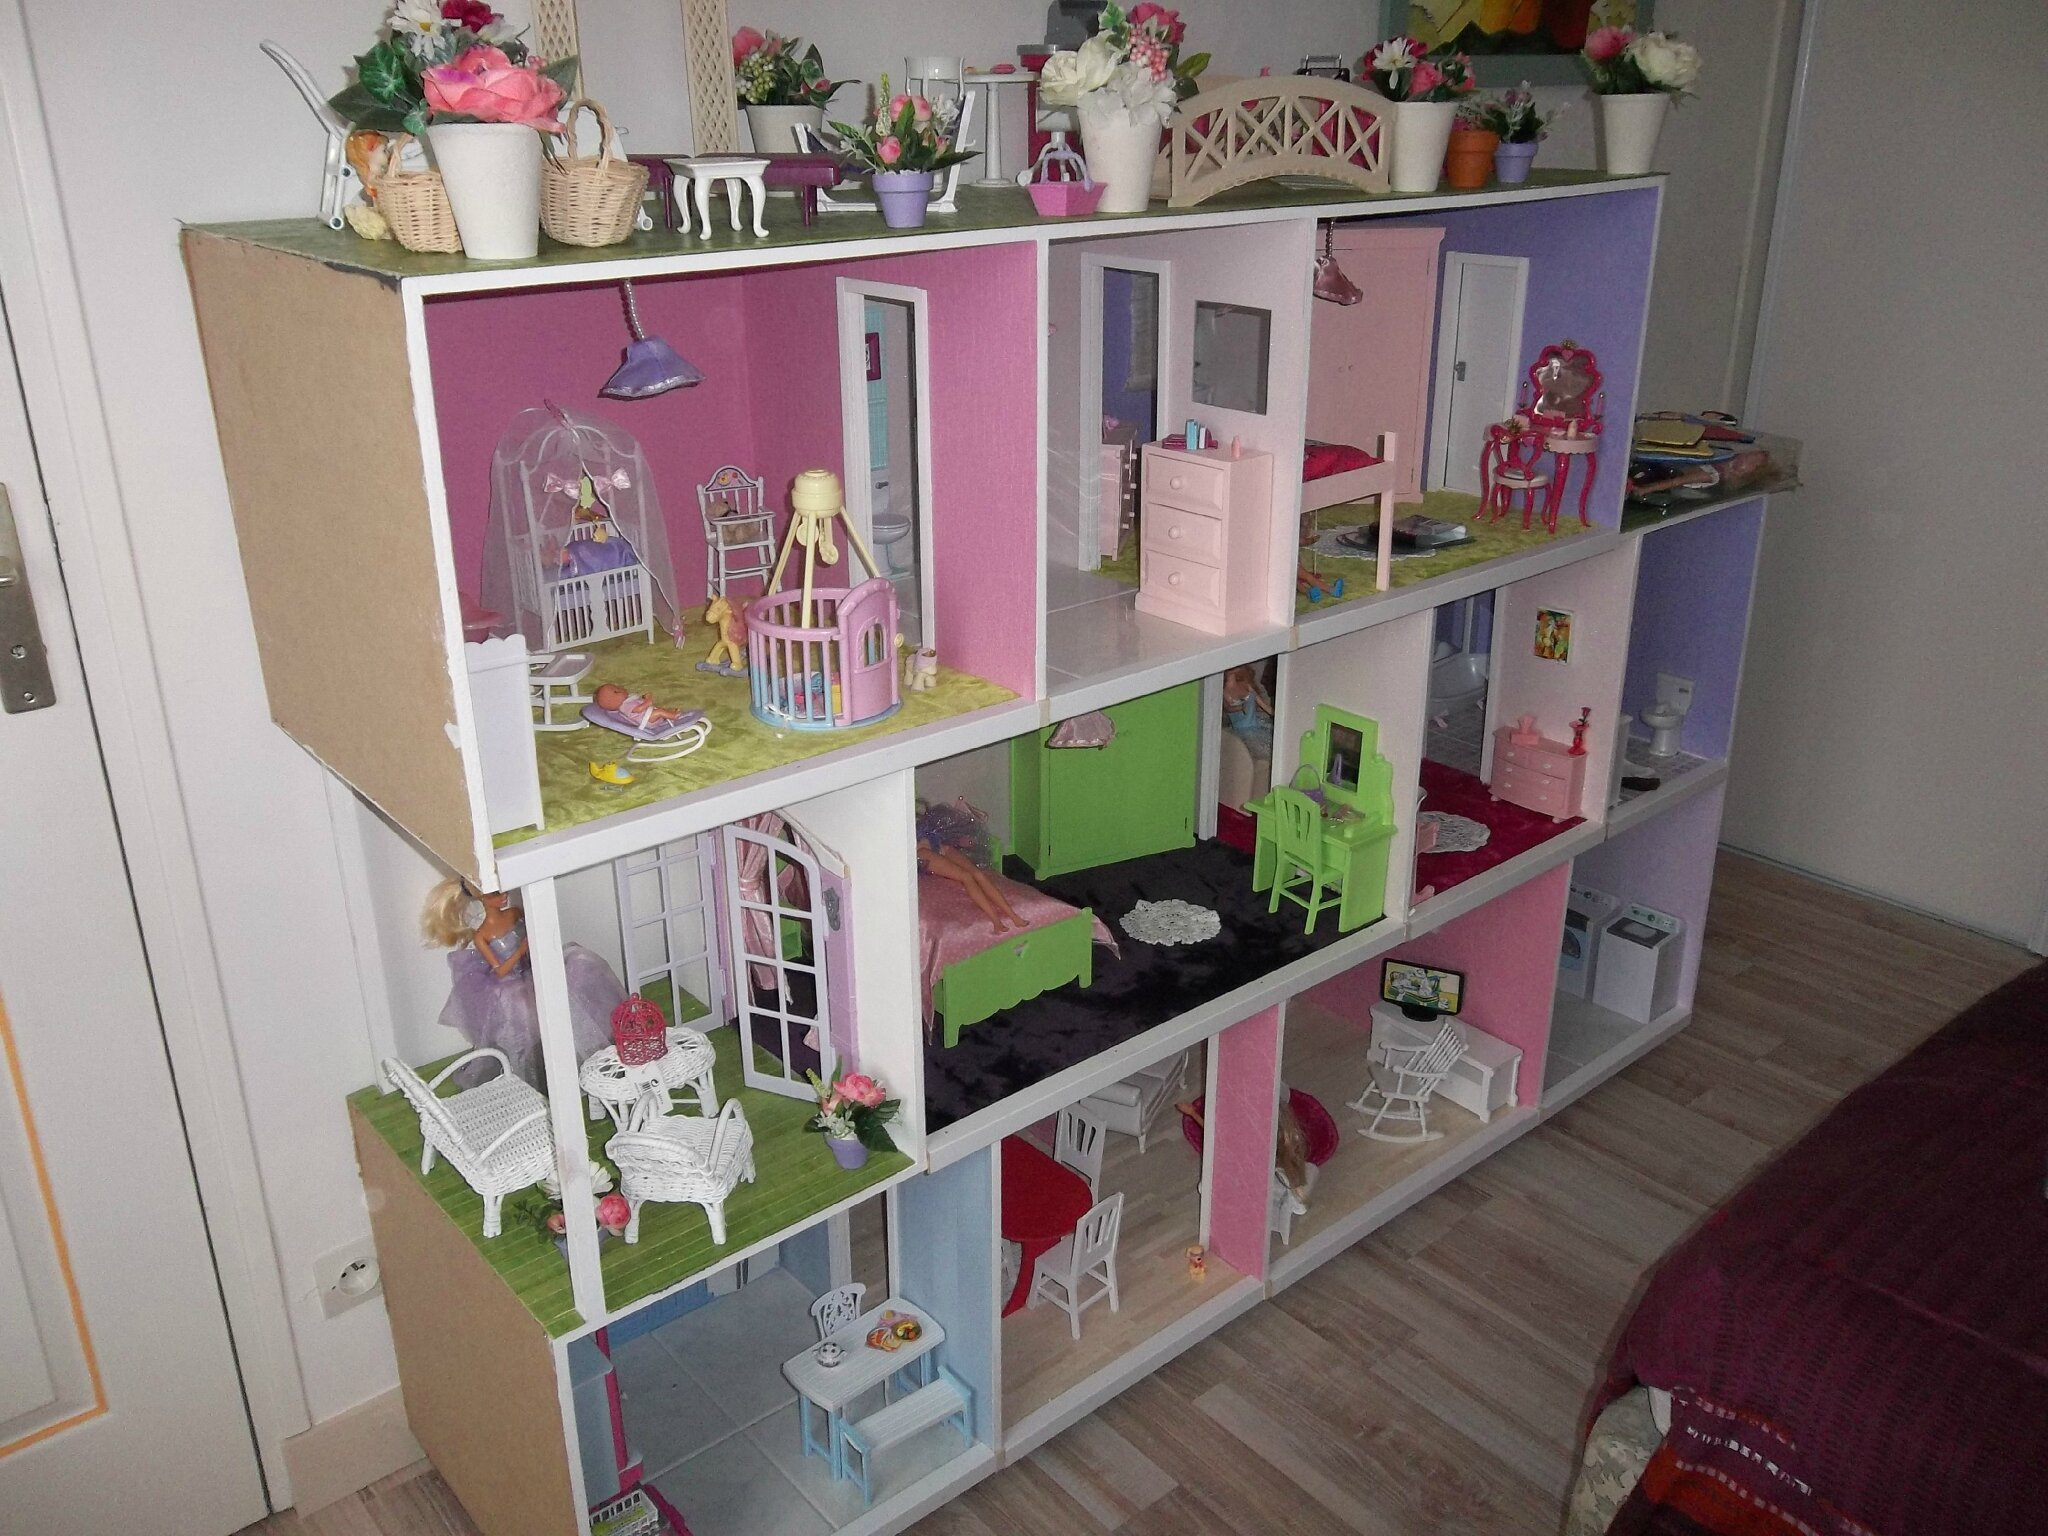 comment construire une maison de barbie ventana blog. Black Bedroom Furniture Sets. Home Design Ideas